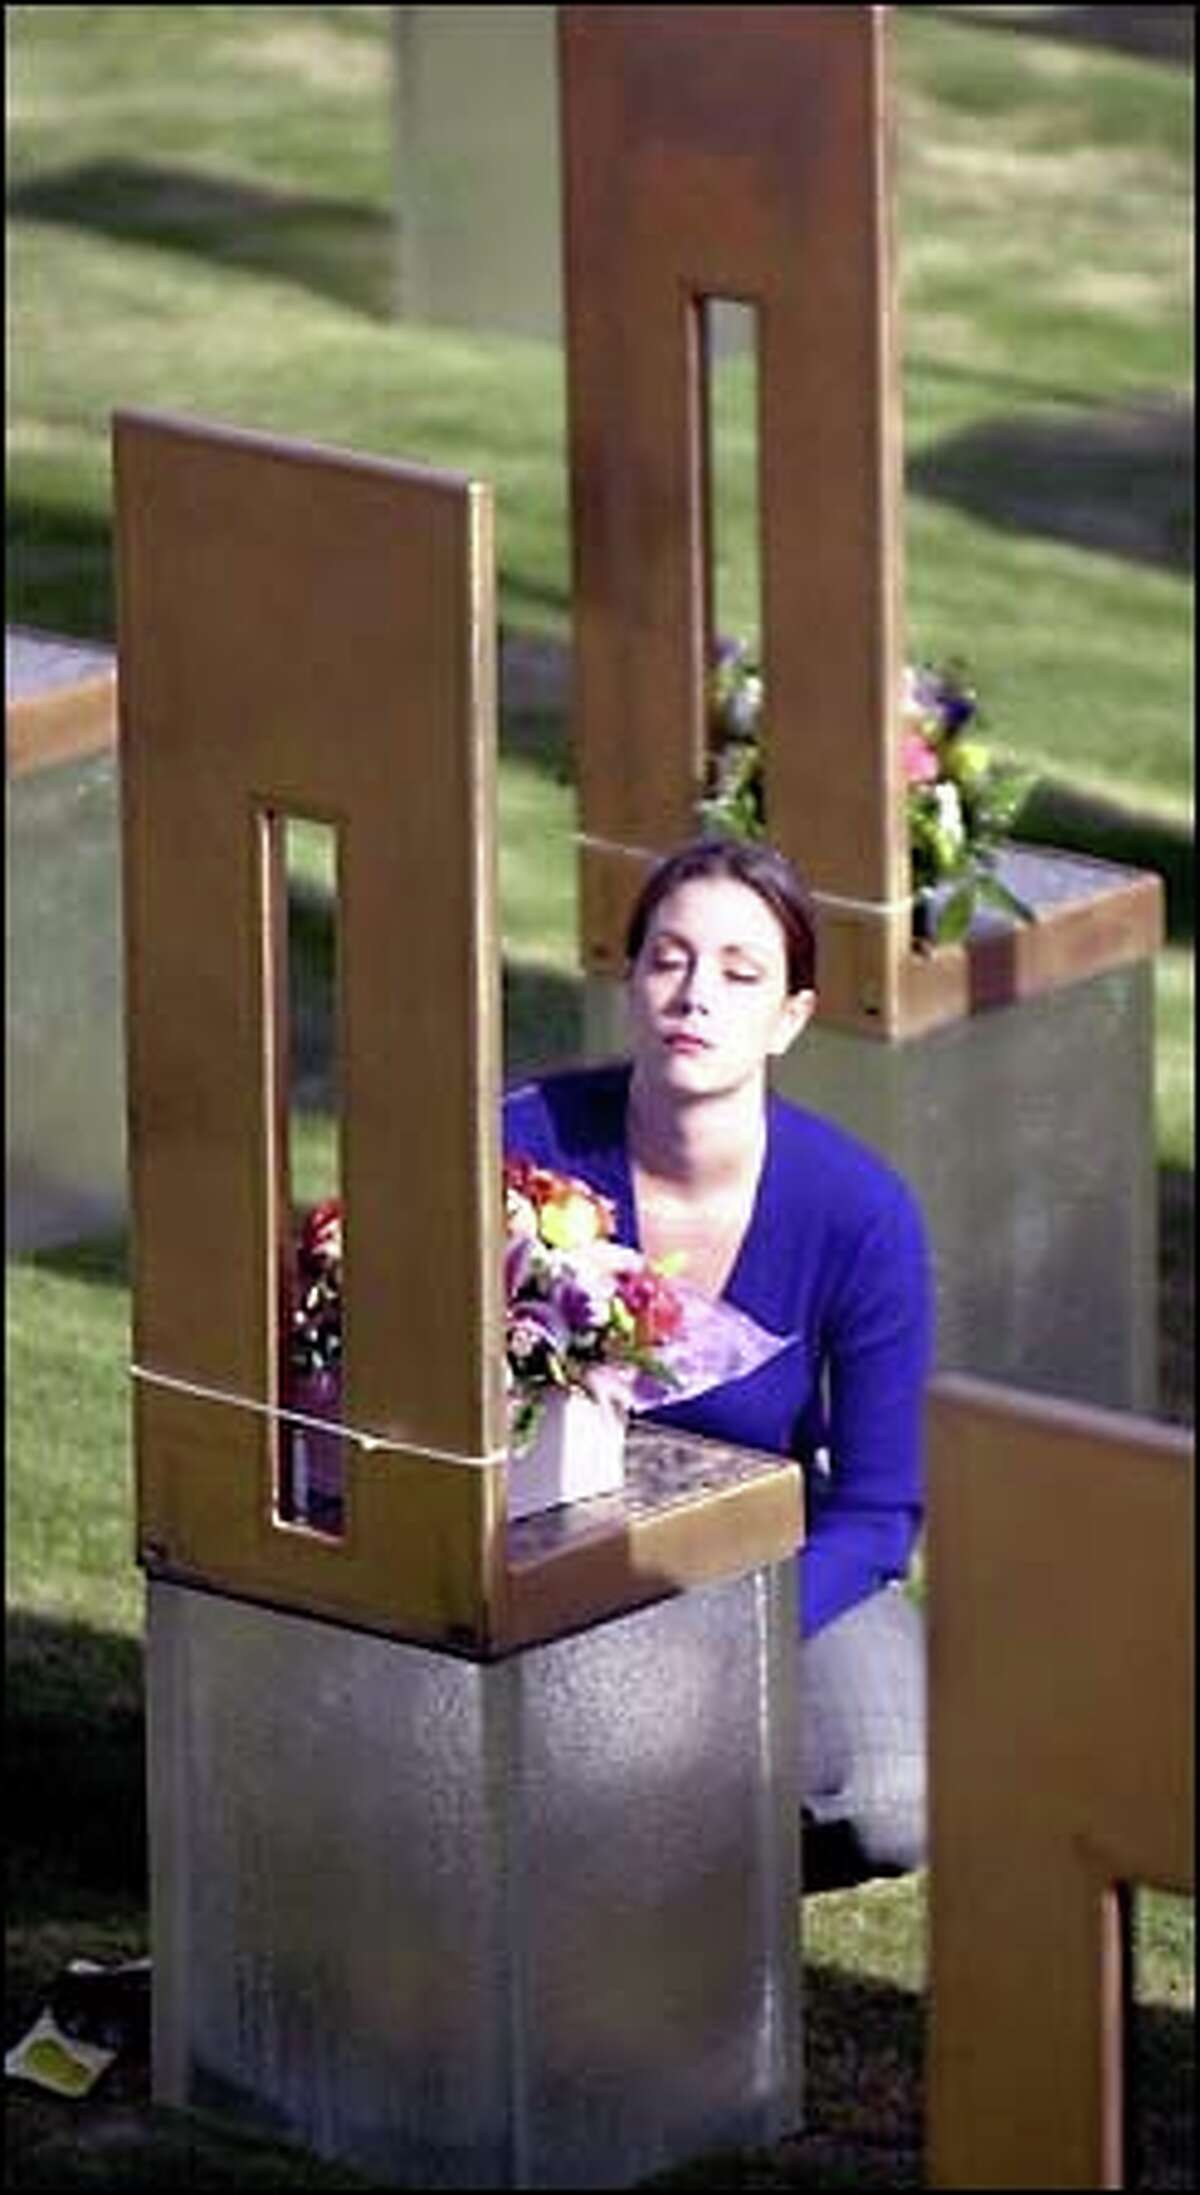 Jennifer Walker reflects as she kneels in front of the memorial chair for her father, who was killed in the Oklahoma City Federal Building bombing six years ago. Services to mark the anniversary of the bombing of the Alfred P. Murrah Federal Building were conducted at the Oklahoma City National Memorial site yesterday. Church bells chiming